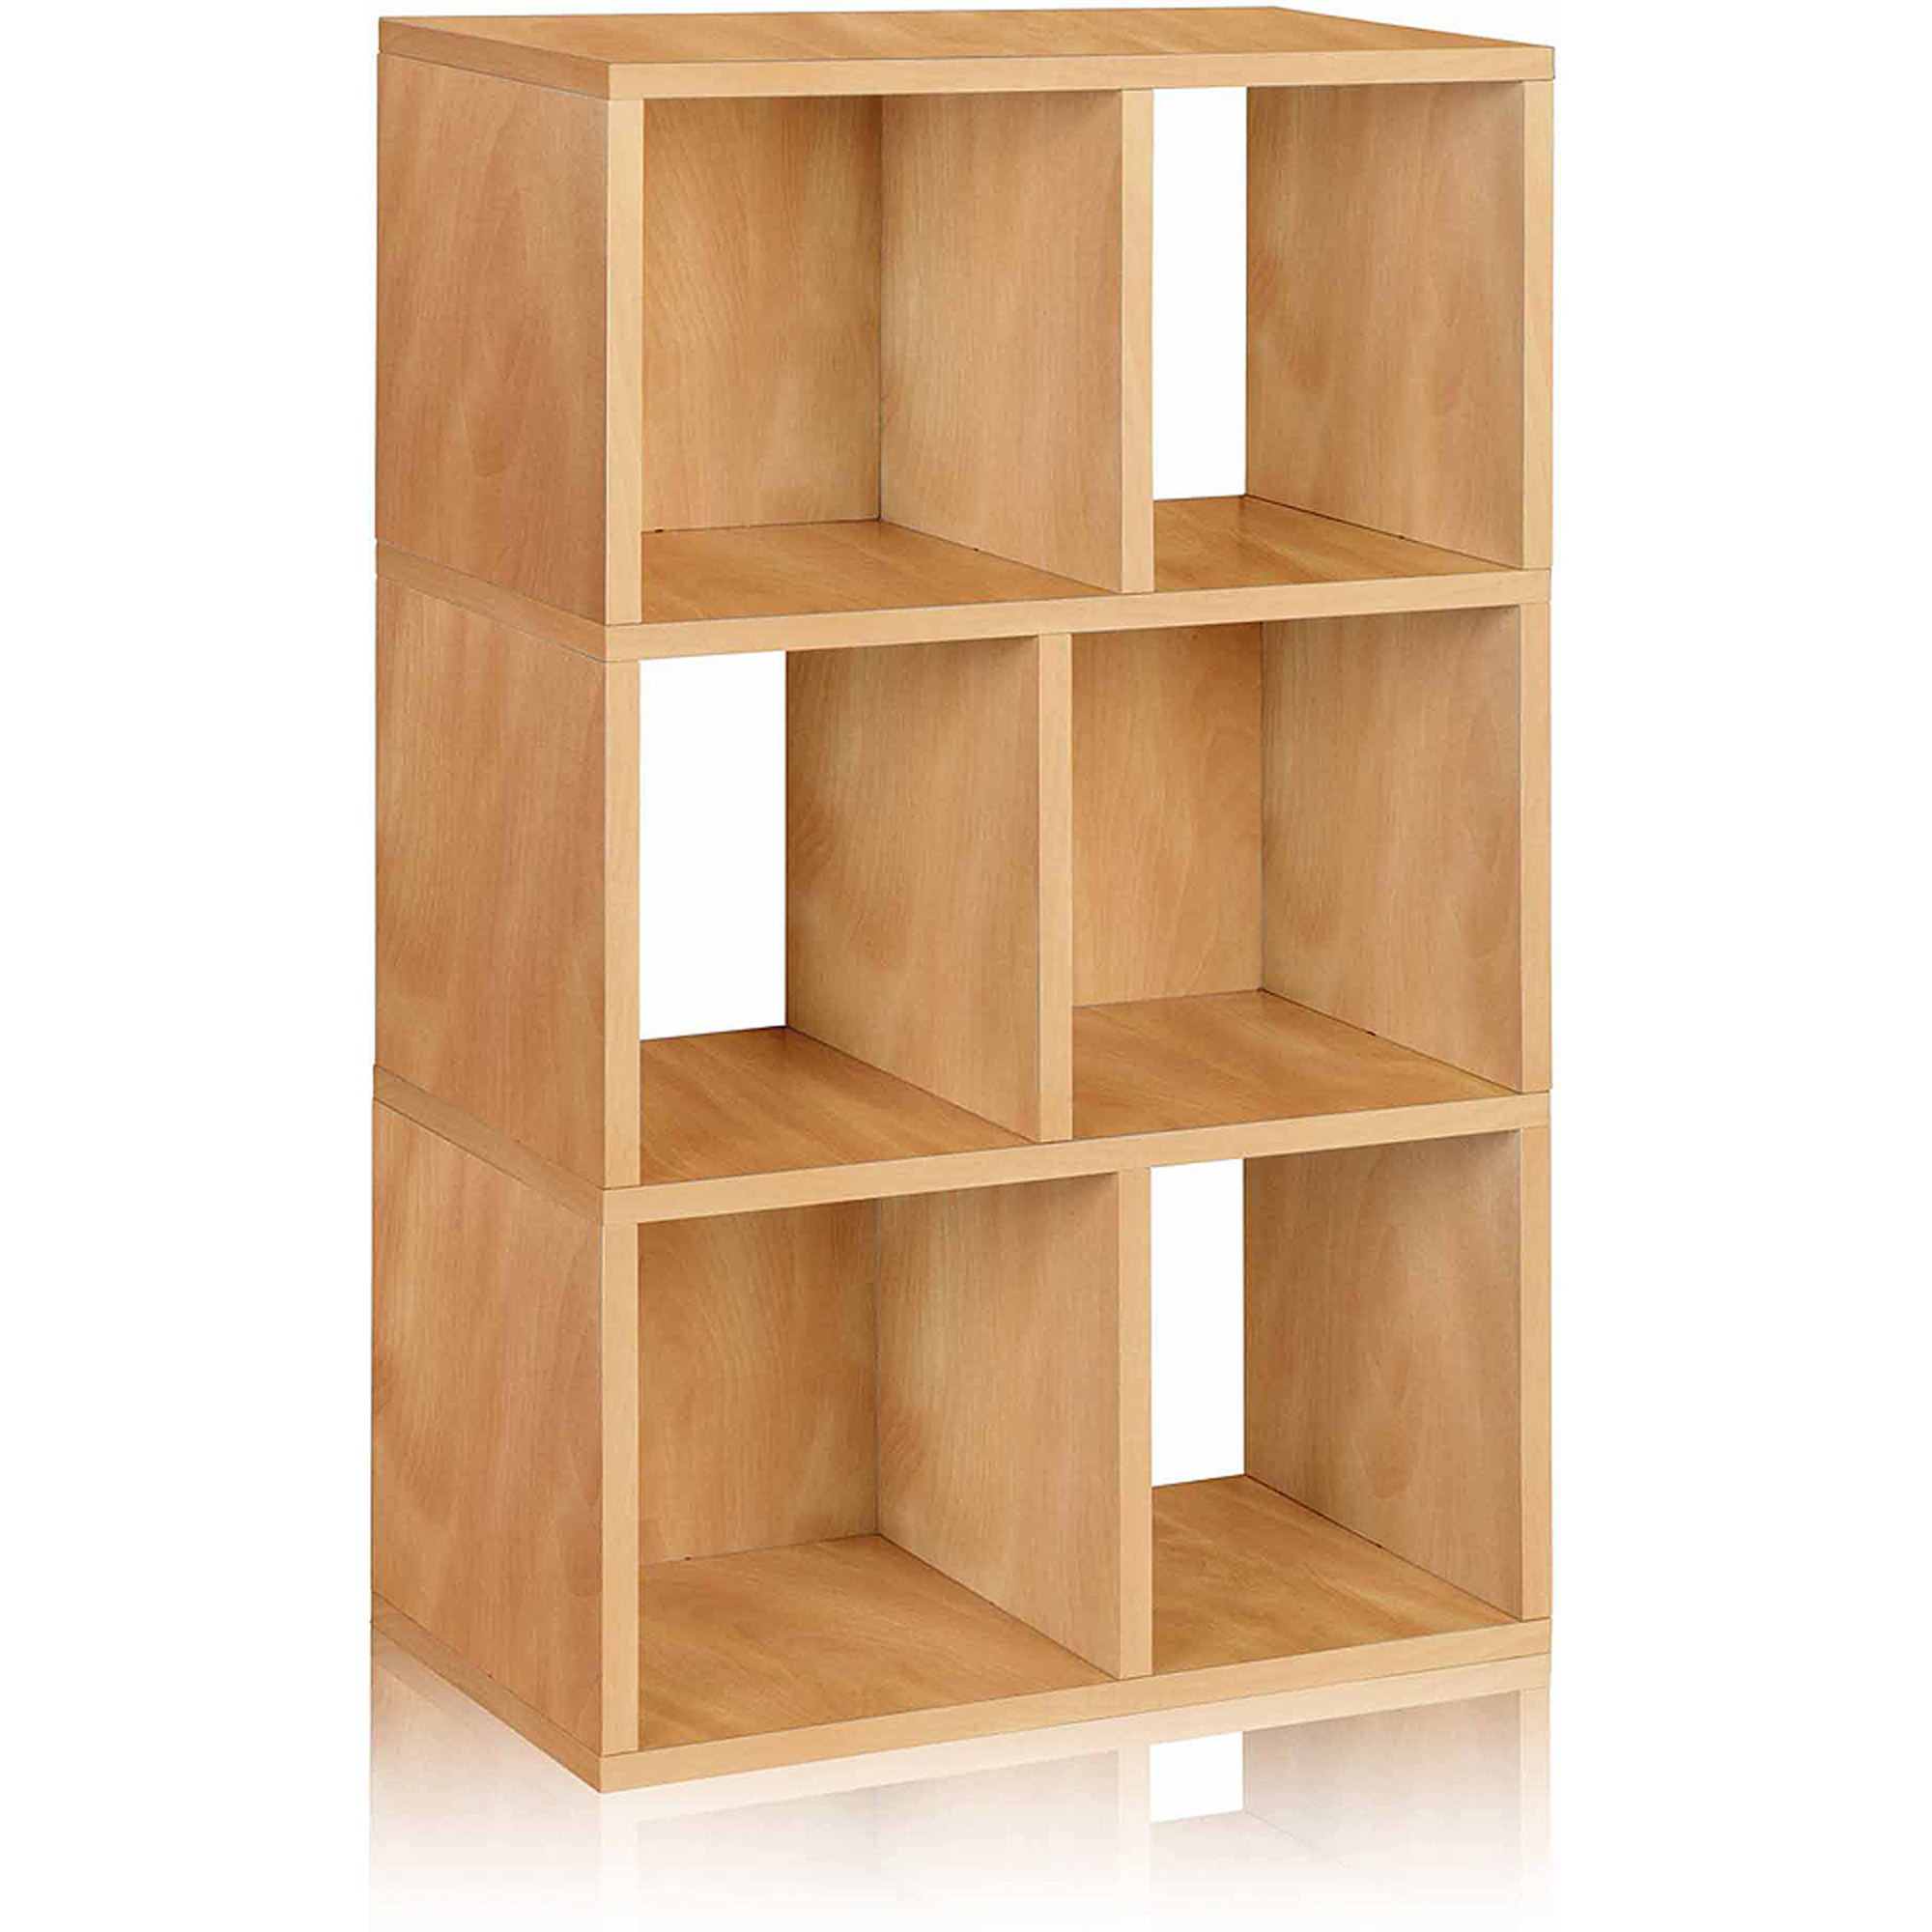 Way Basics Eco 3-Shelf Laguna Bookcase and Cubby Storage, Natural